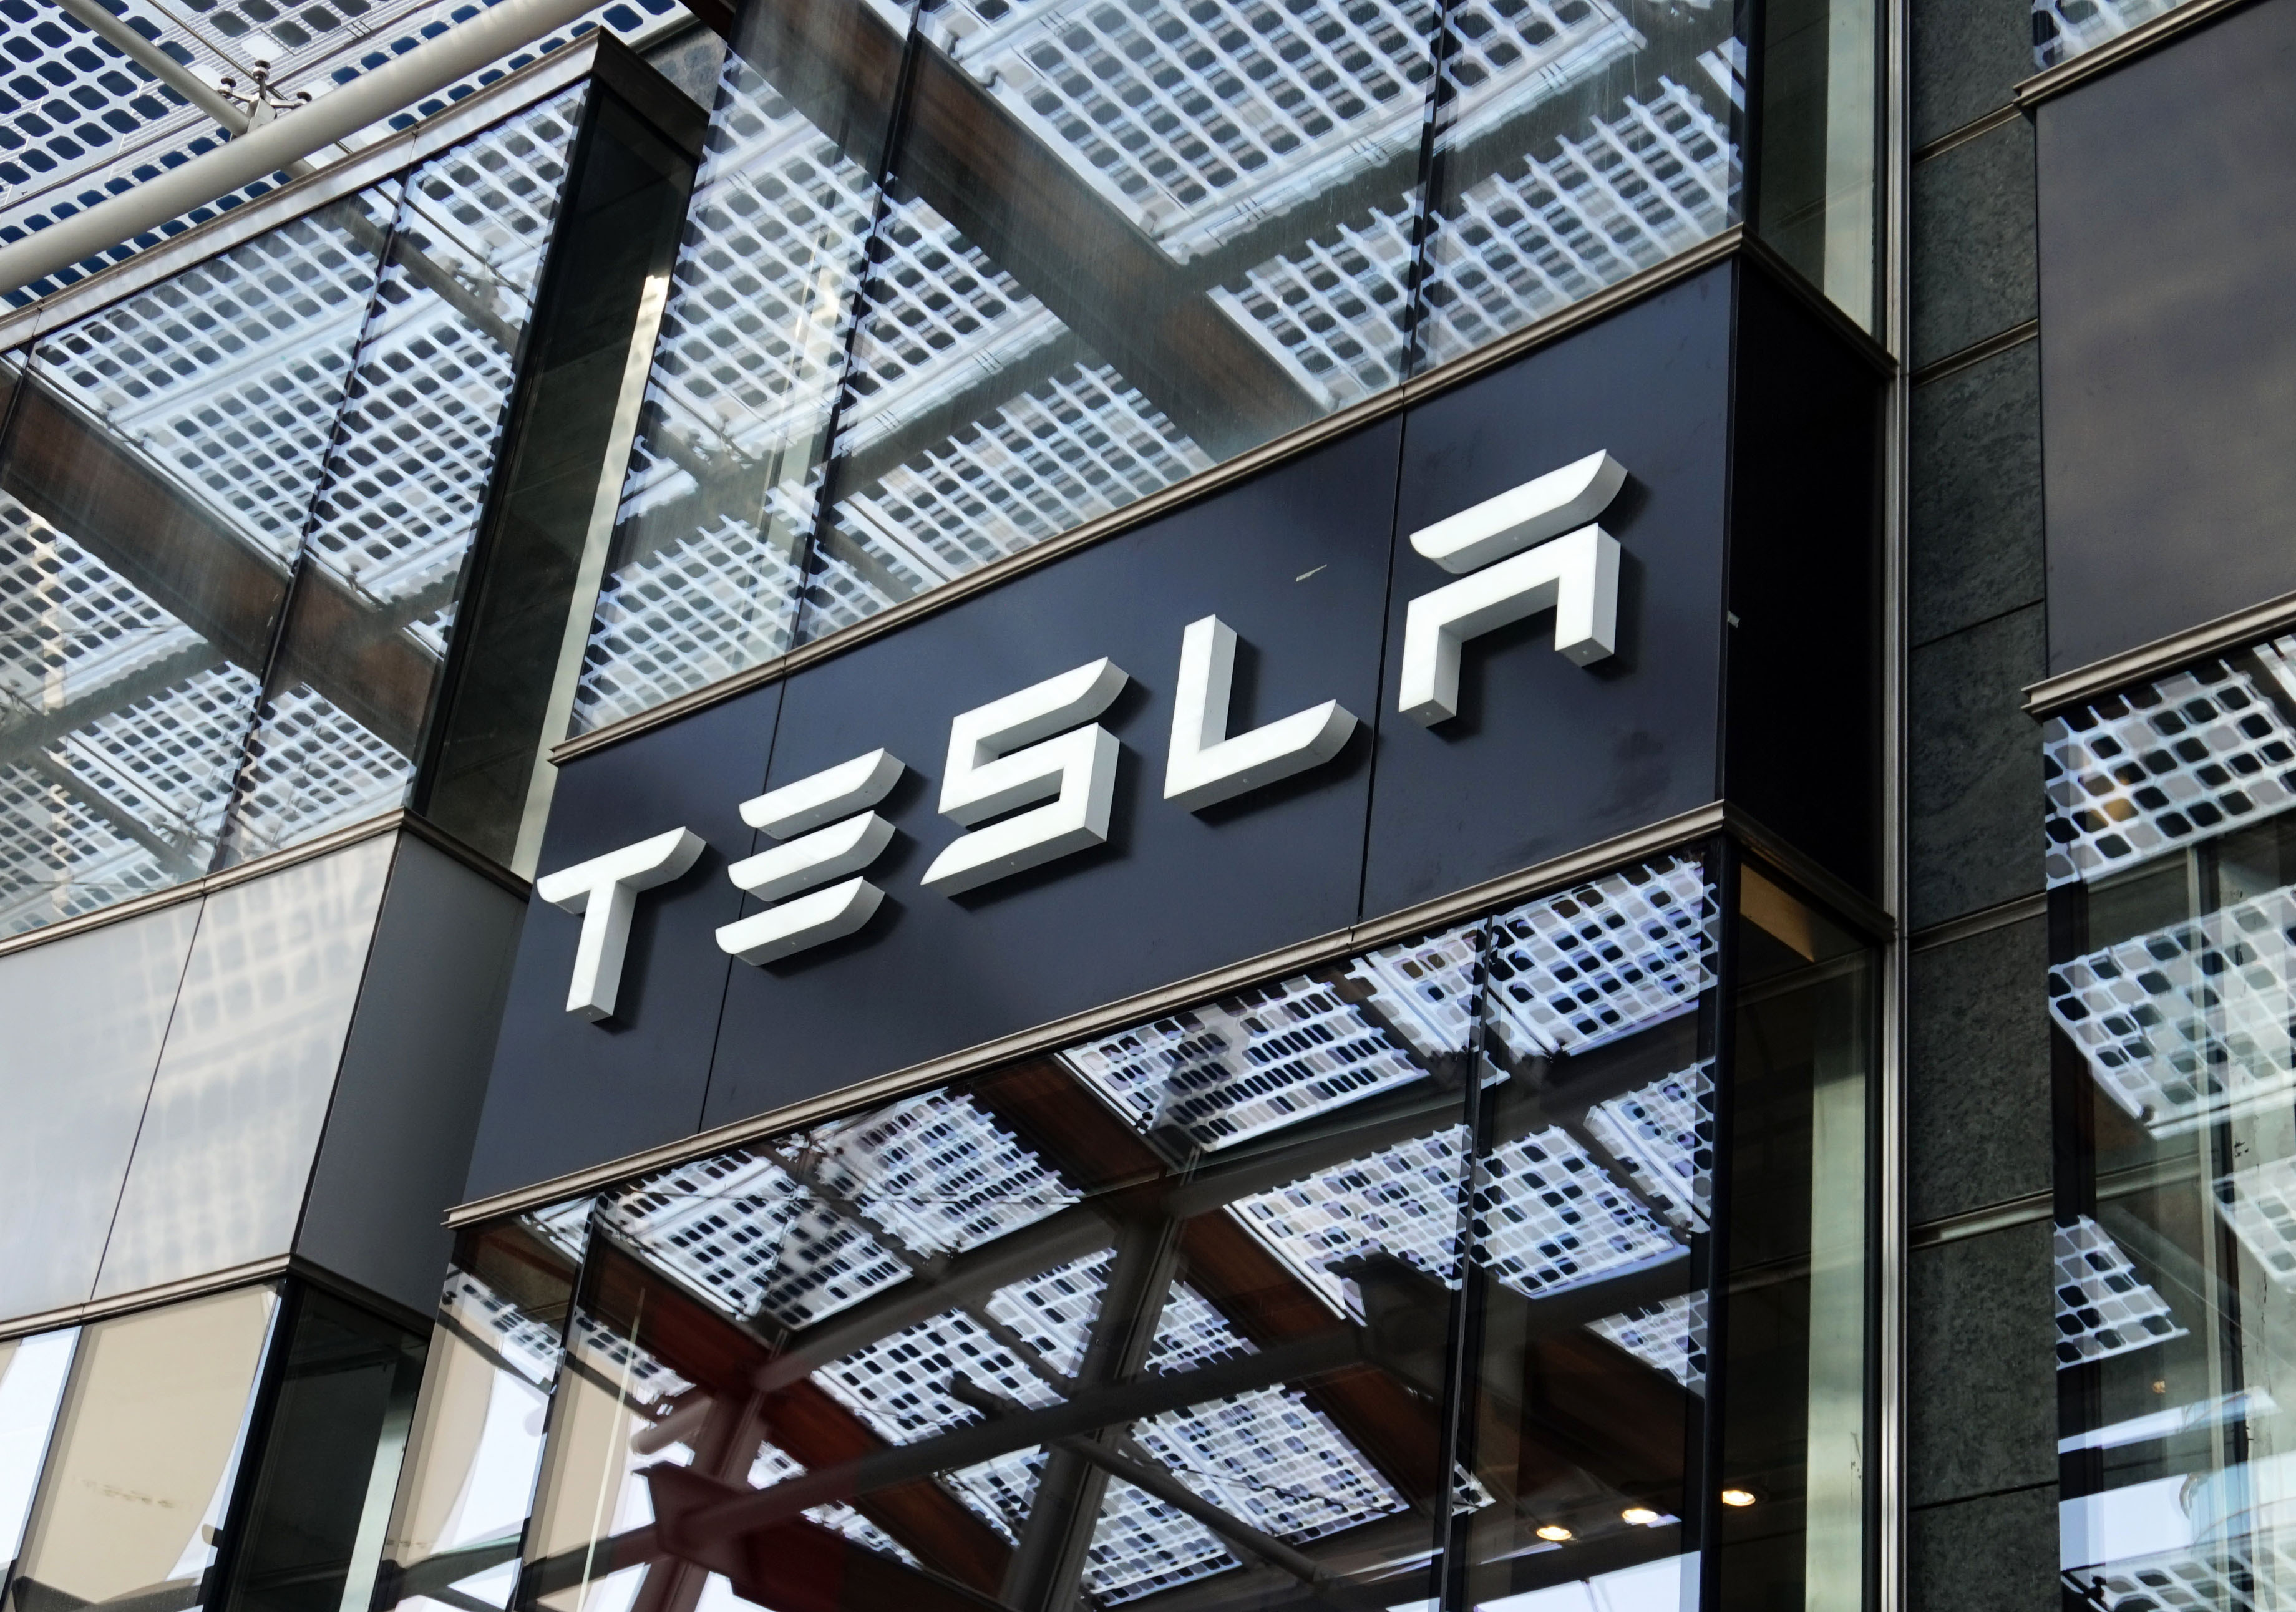 Tesla Cutting More Jobs As Elon Musk Talks Of 'Difficult' Road Ahead